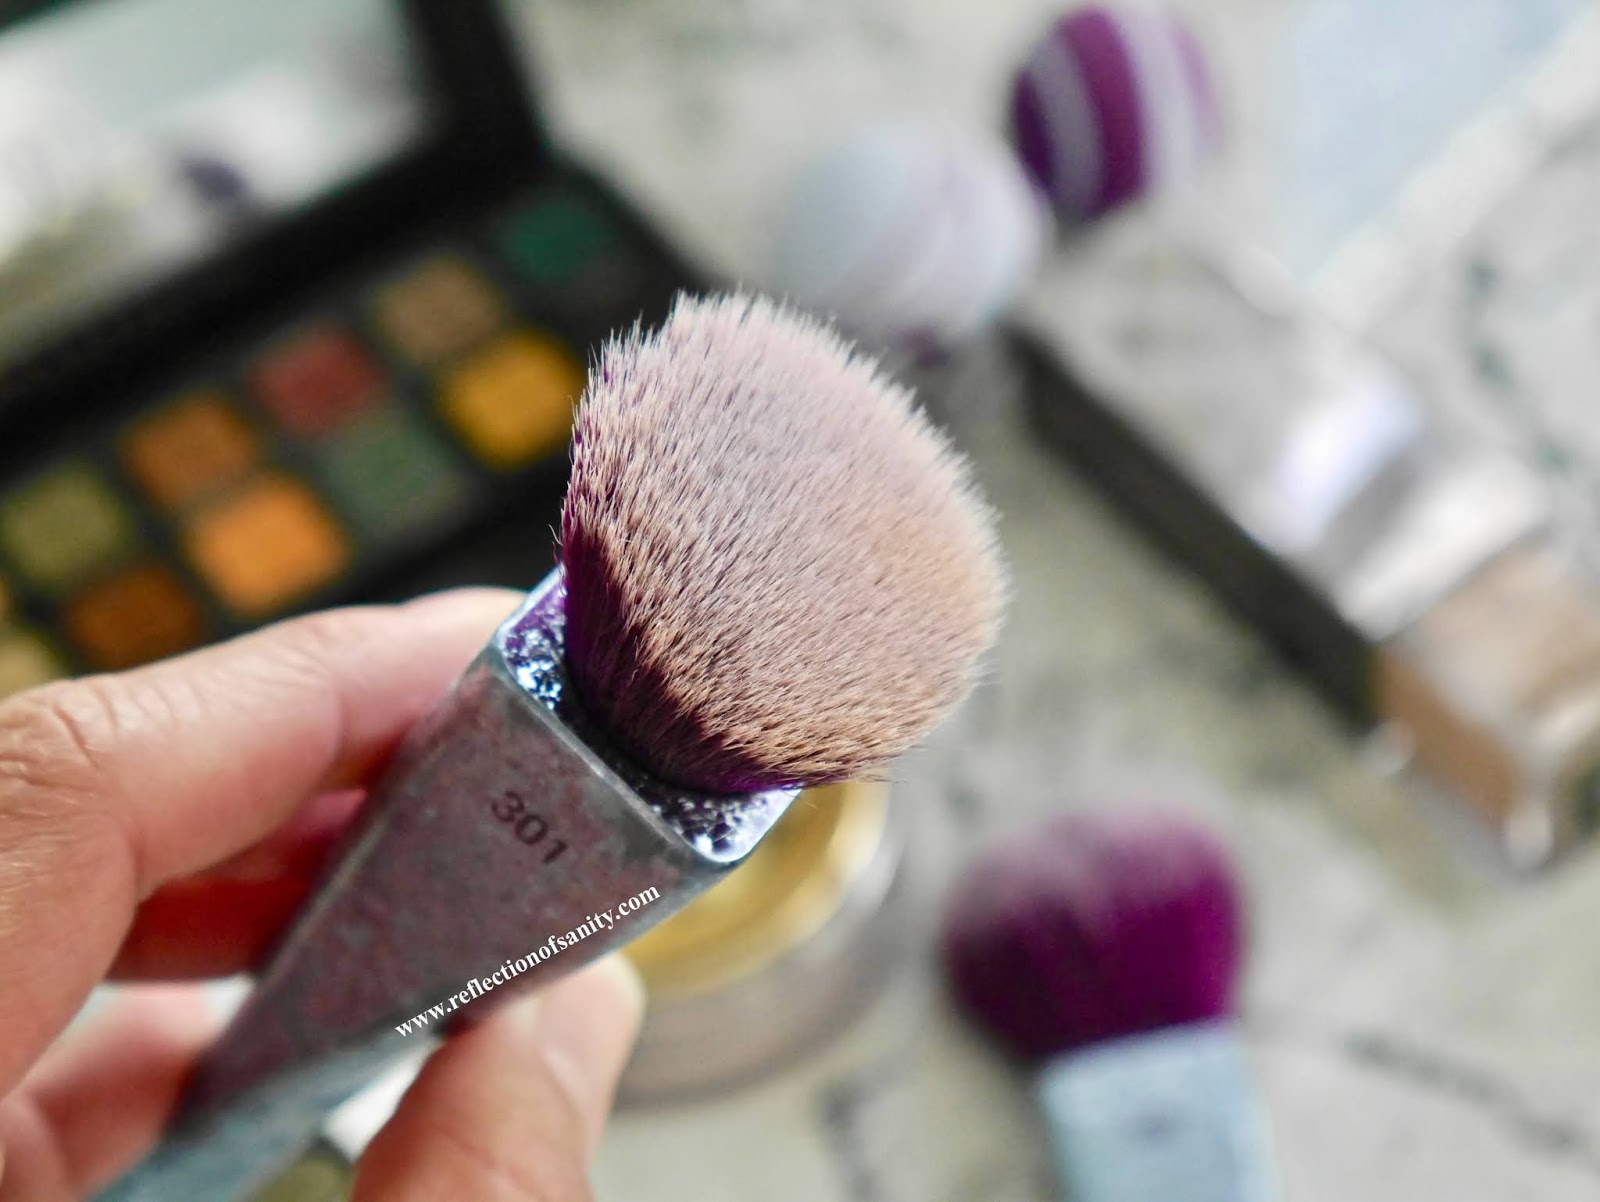 beauty, makeup, makeup tools, makeup brushes, beauty tools